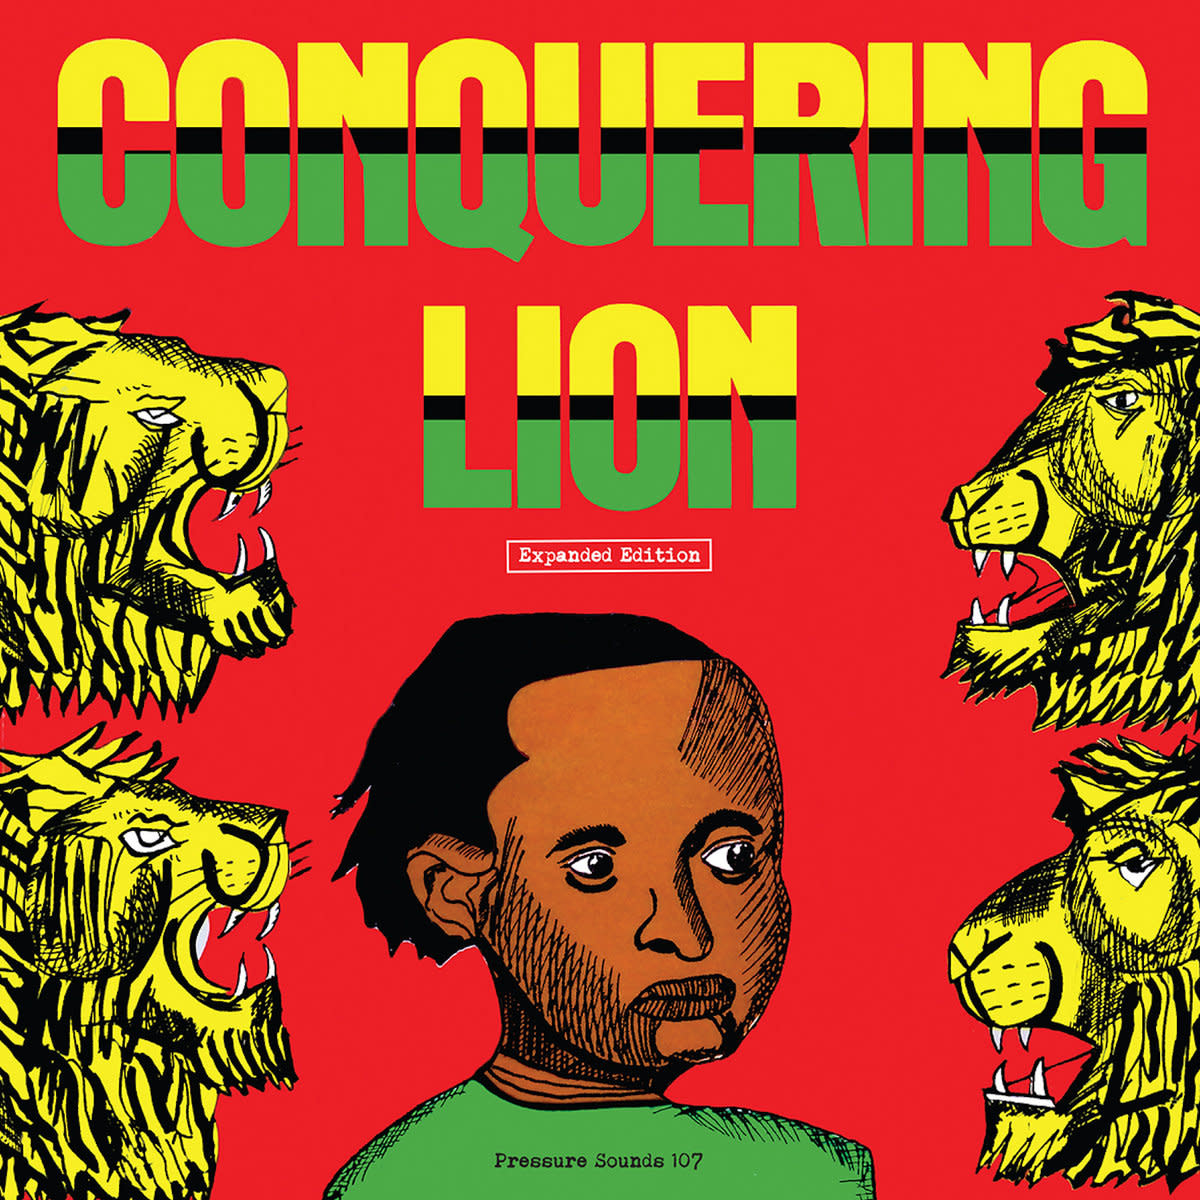 Pressure Sounds Yabby You & The Prophets - Conquering Lion (Expanded Edition)